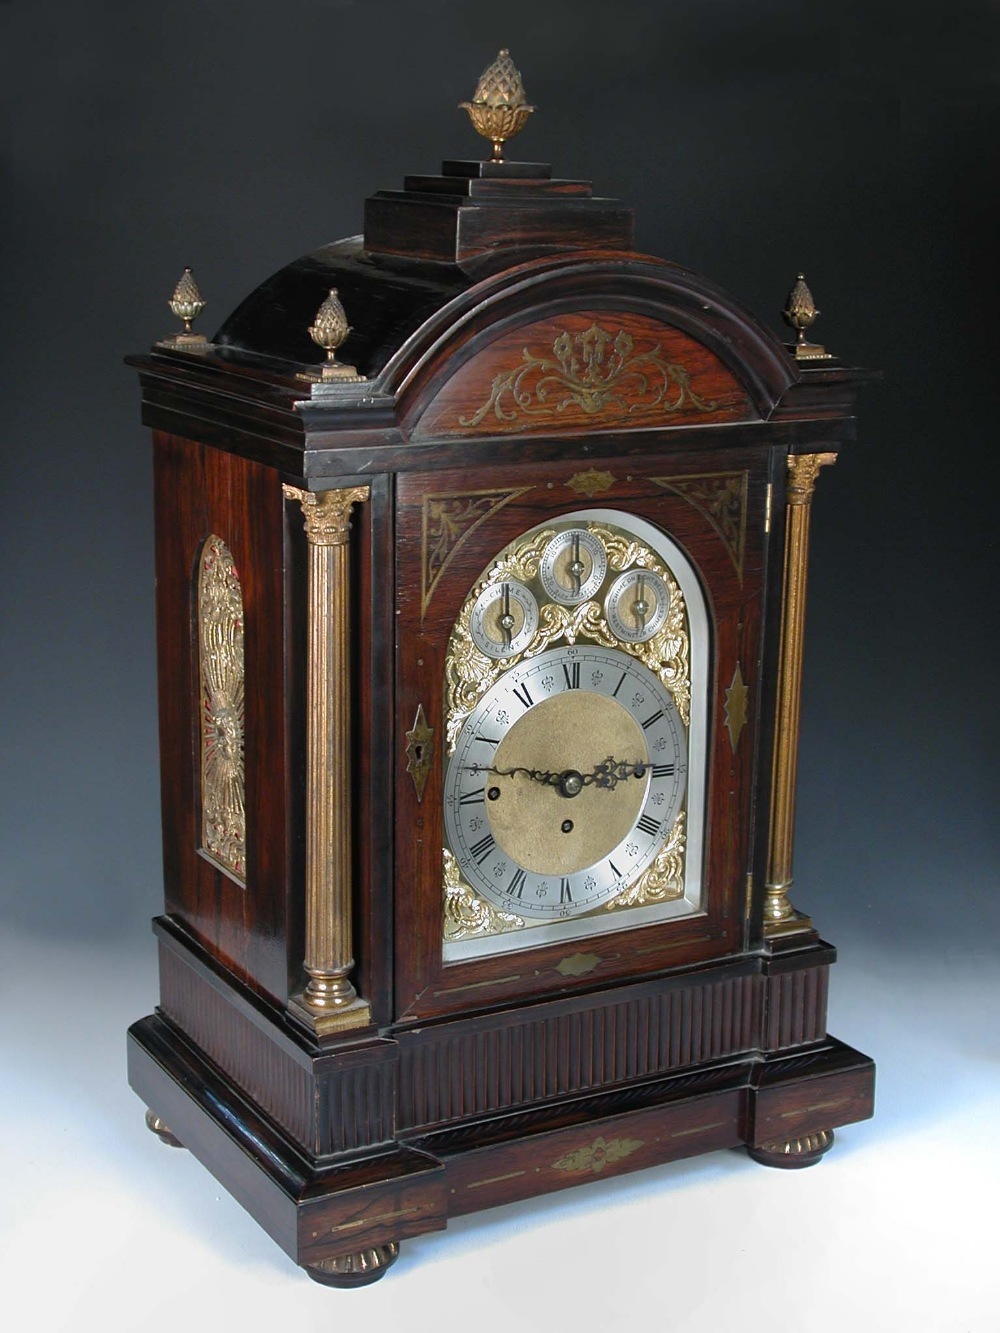 Lot 680 - An imposing Victorian rosewood and brass inlaid chiming clock, the breakarch case with brass